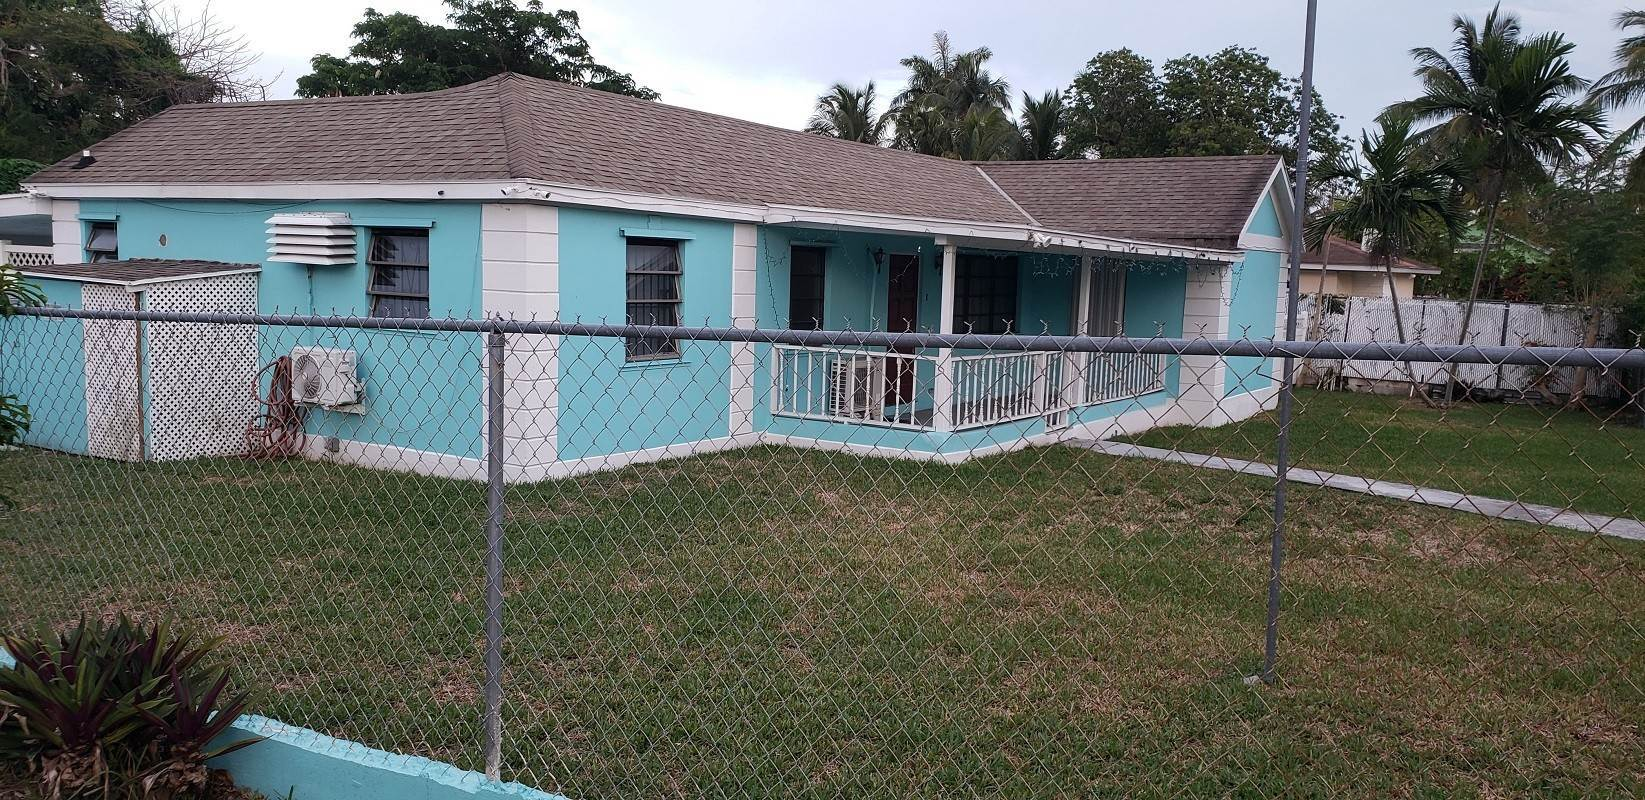 Single Family Homes for Rent at 3 Bed 2 Bath Residence #7 Vanga Court, Blair Estates - MLS 43817 Blair Estates, Eastern Road, Nassau And Paradise Island Bahamas